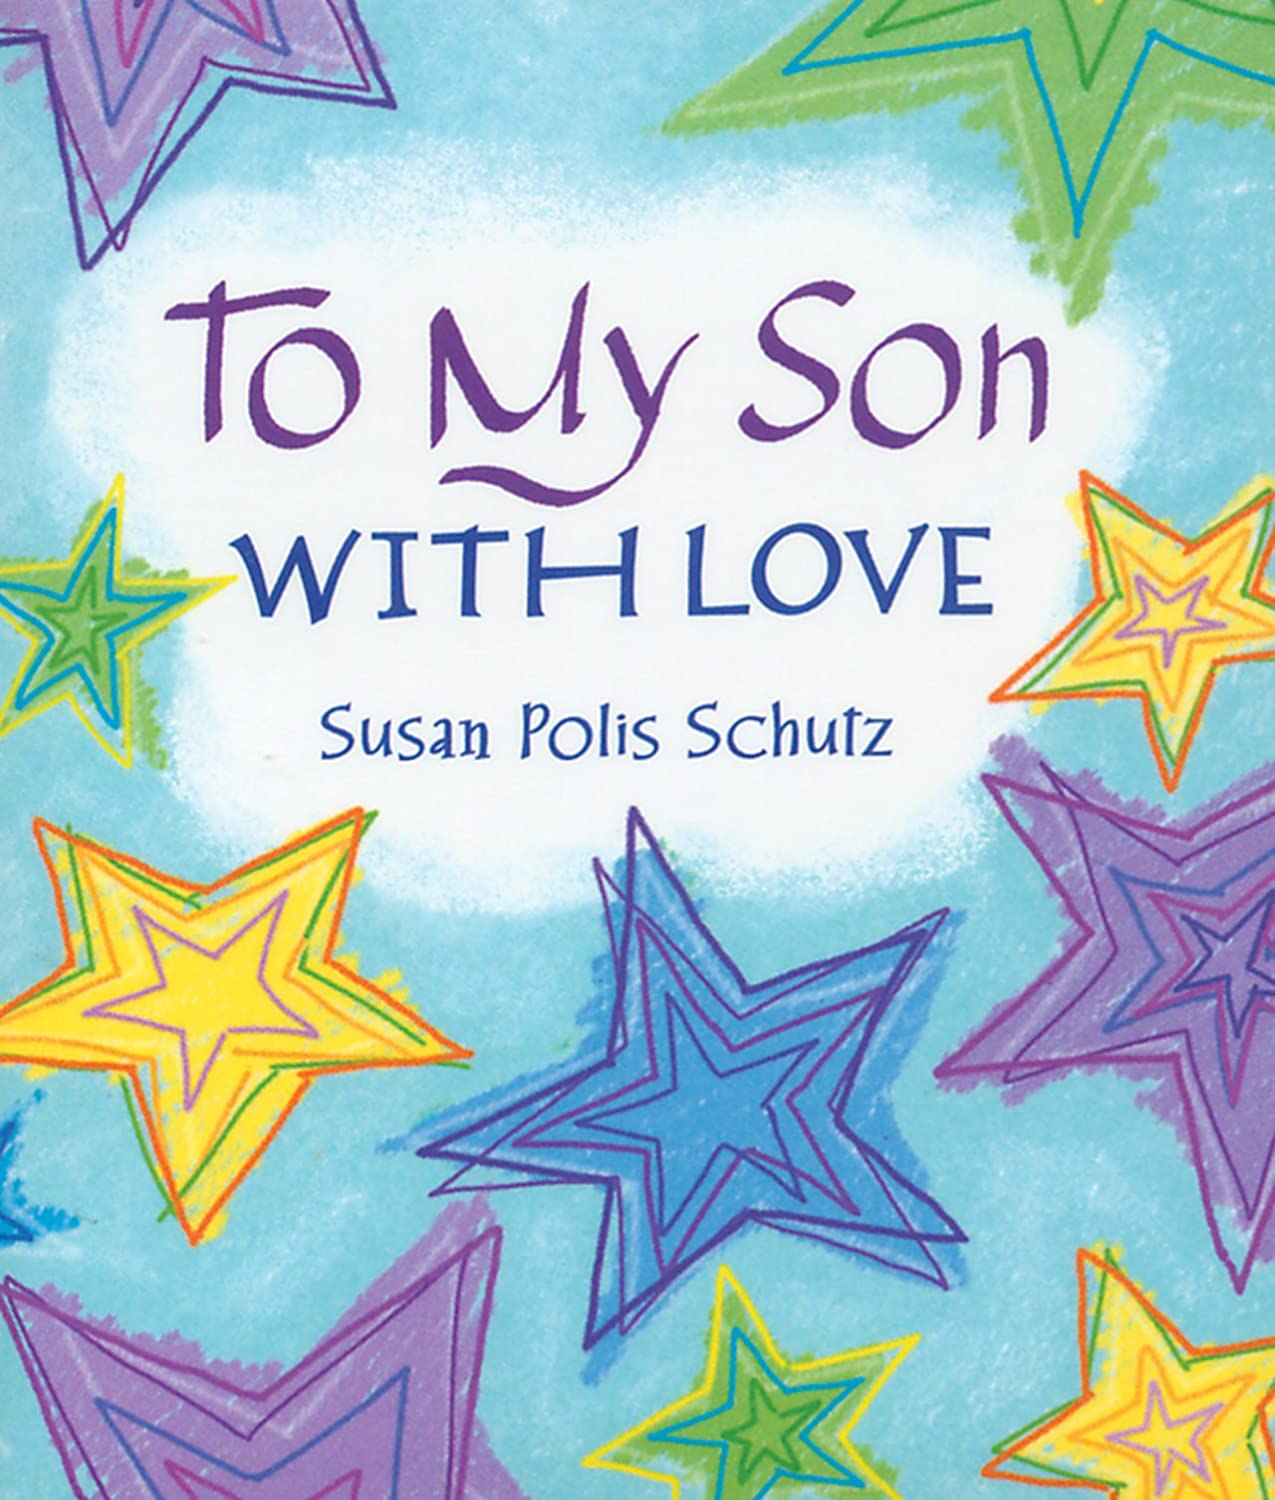 Blue Mountain Arts Little Keepsake Book, To My Son With Love by Susan Polis Schutz (KB223) Inc